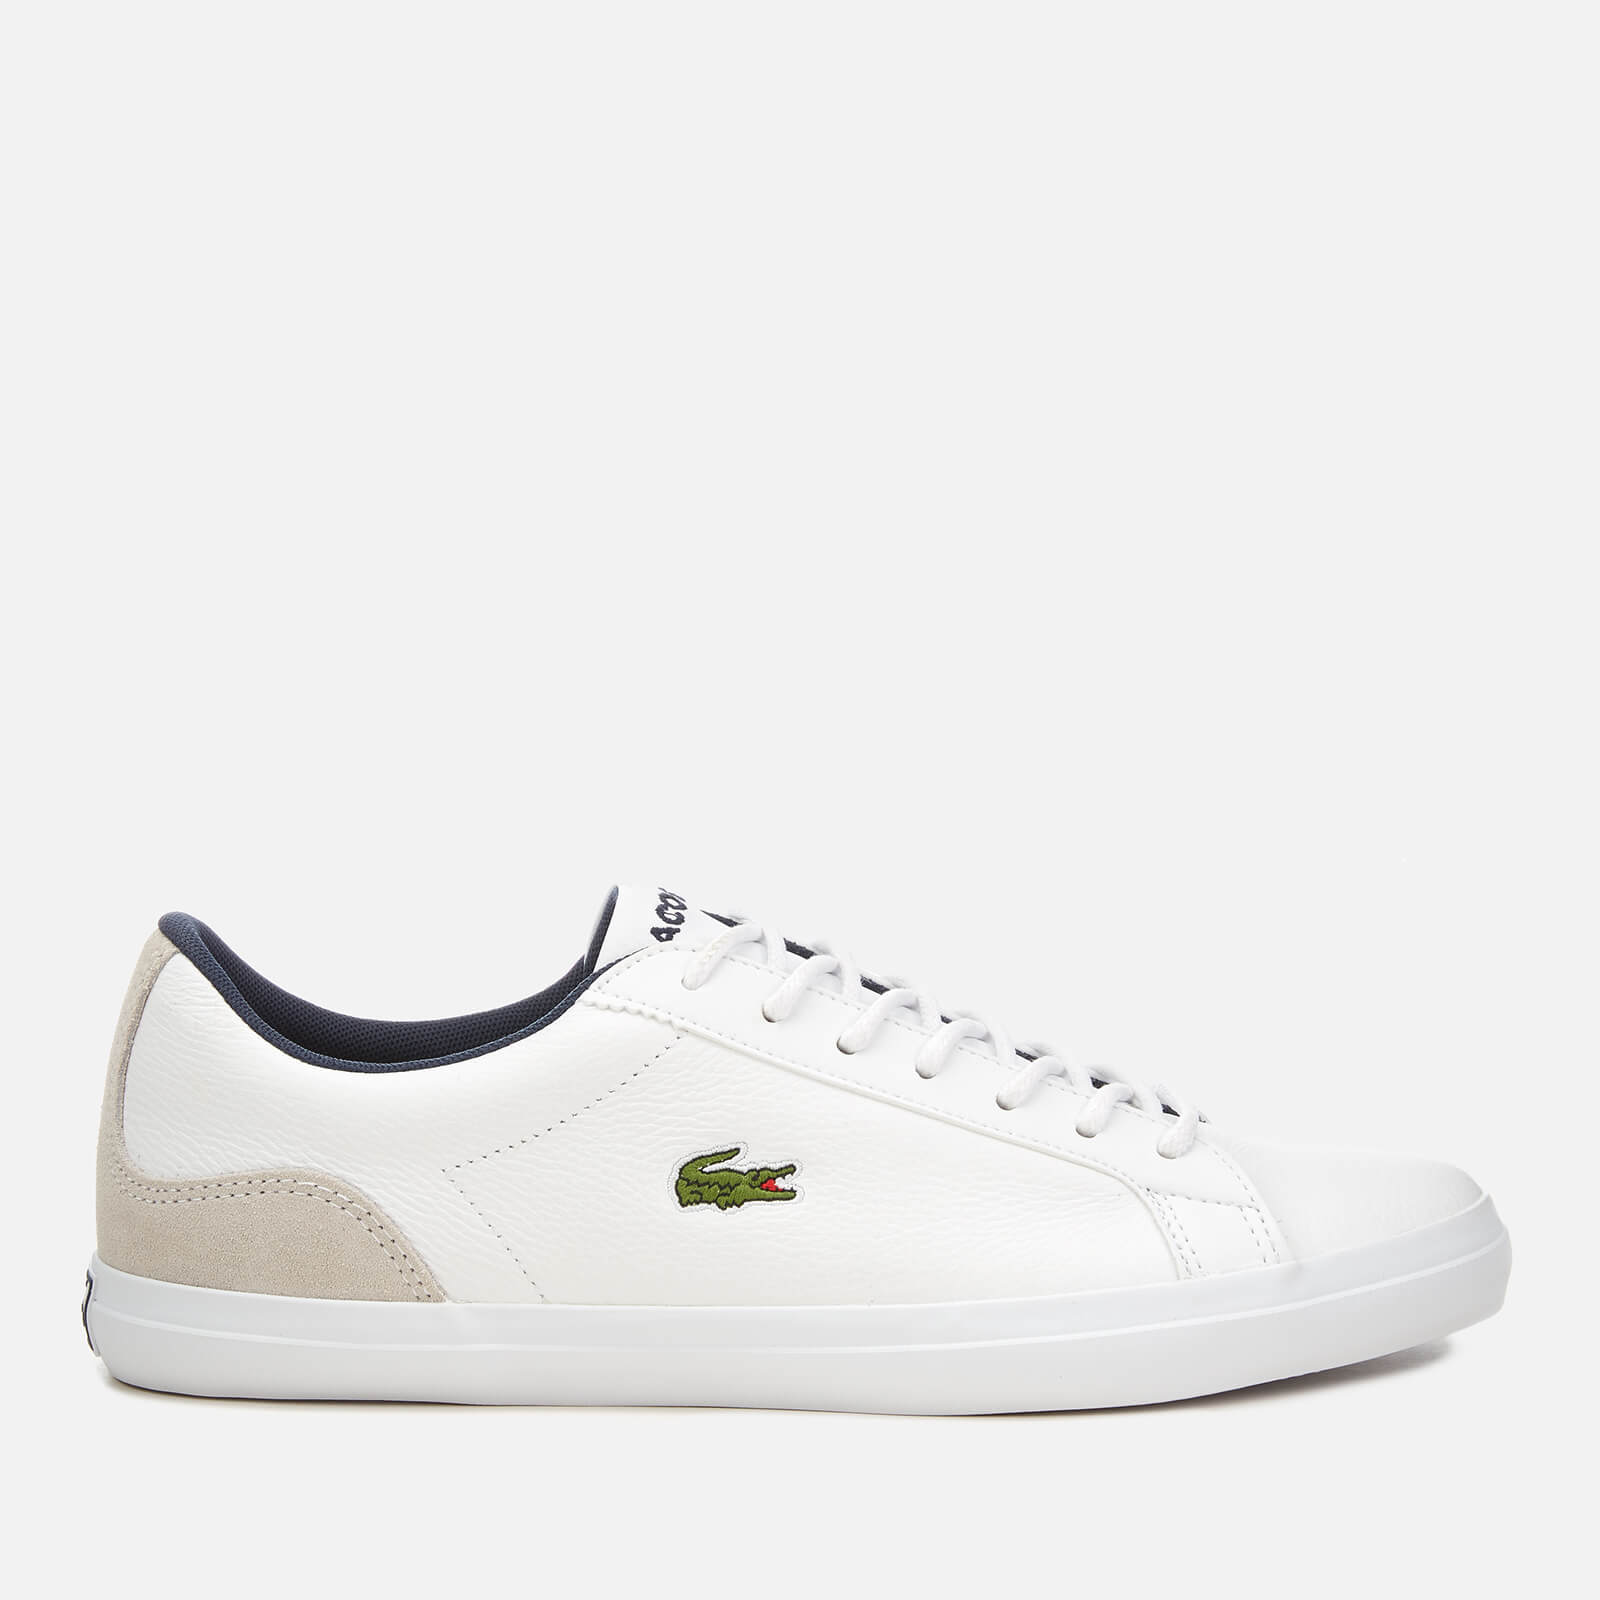 3a73bf759537 Lacoste Men s Lerond 318 3 Leather Suede Trainers - White Navy Mens  Footwear